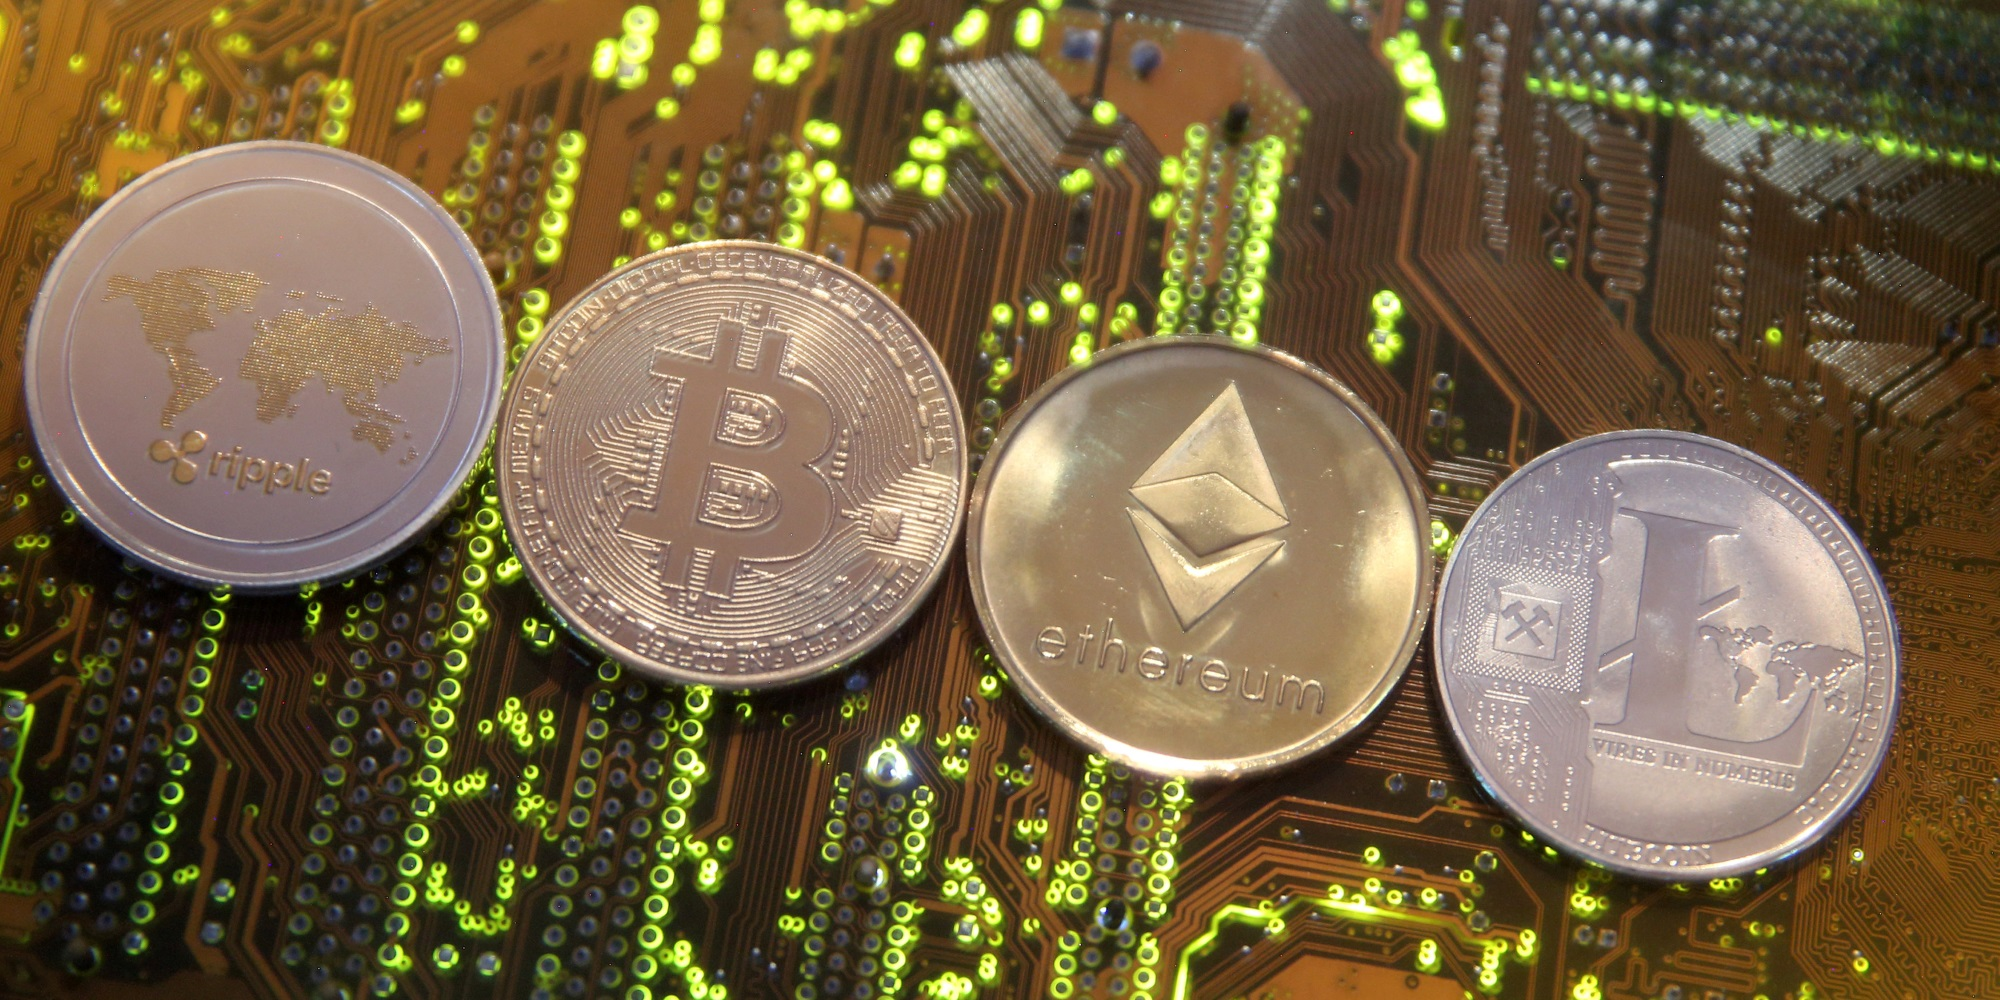 U.S. Congress considers cryptocurrency rules and regulations